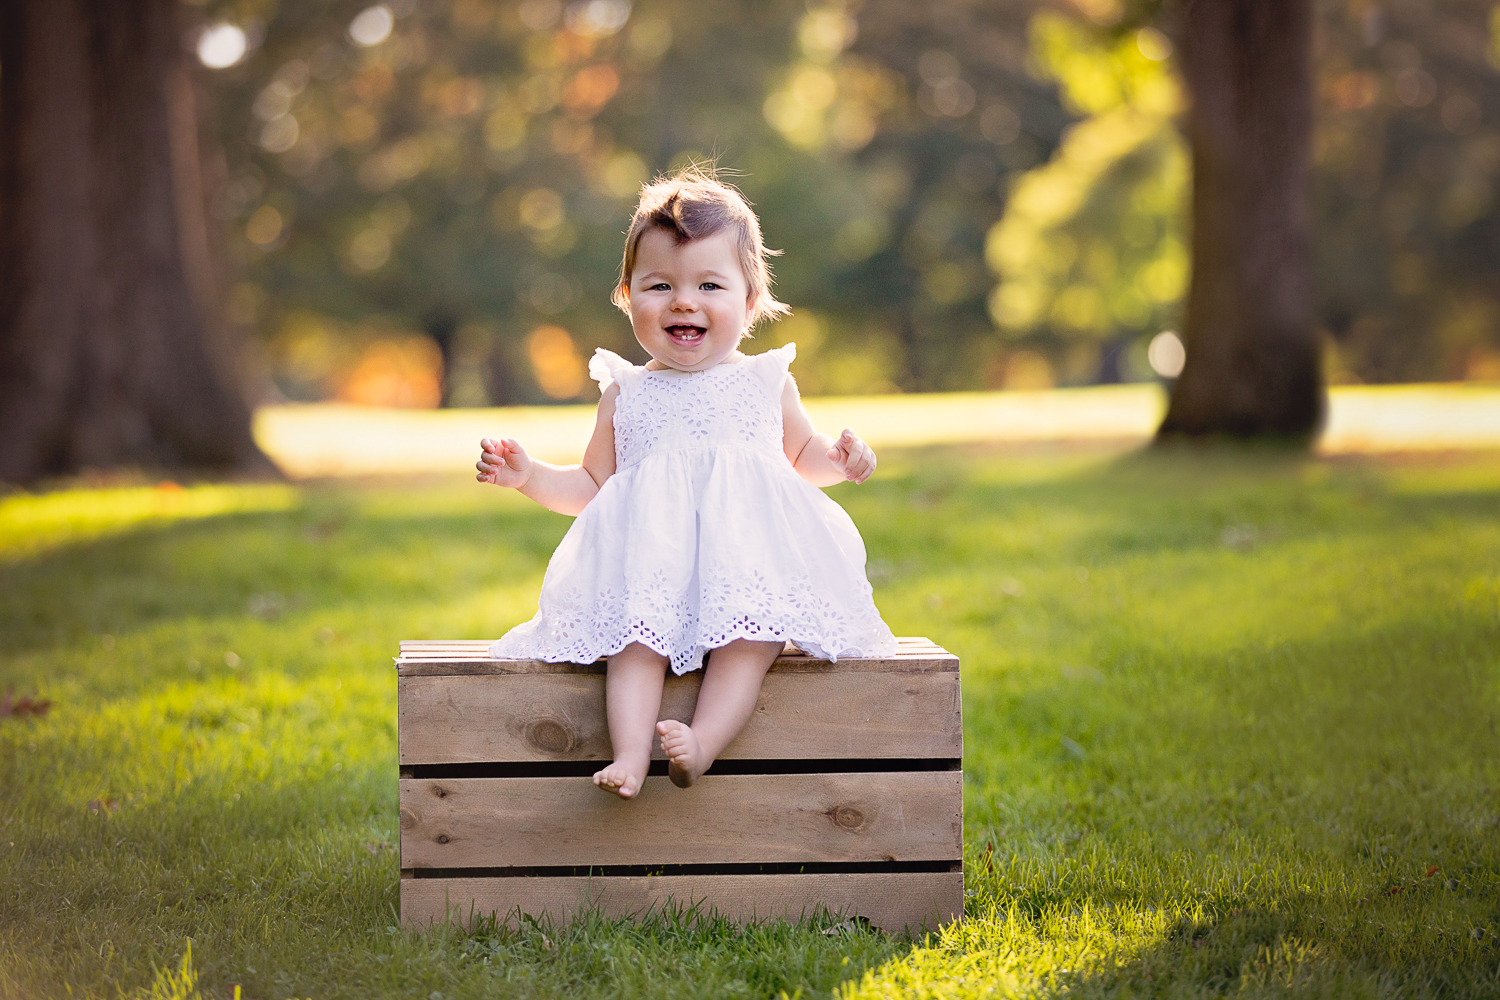 Fall portrait time! A little baby girl sitting on a wooden crate at golden hour